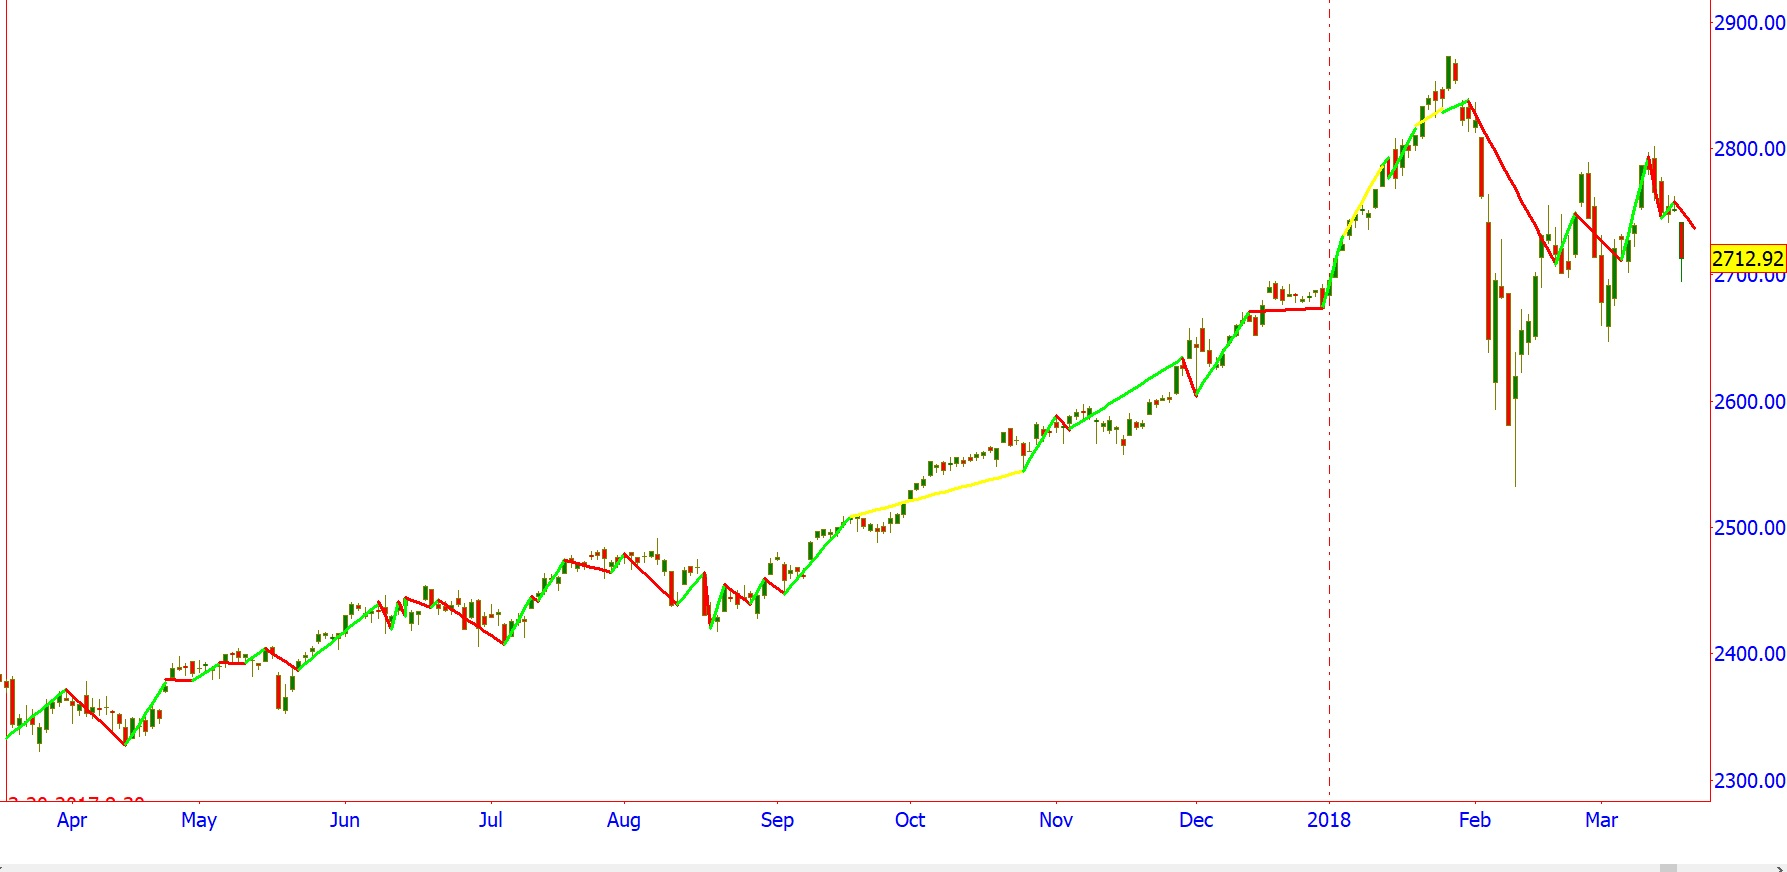 2017-Annual-Cycles-SPX